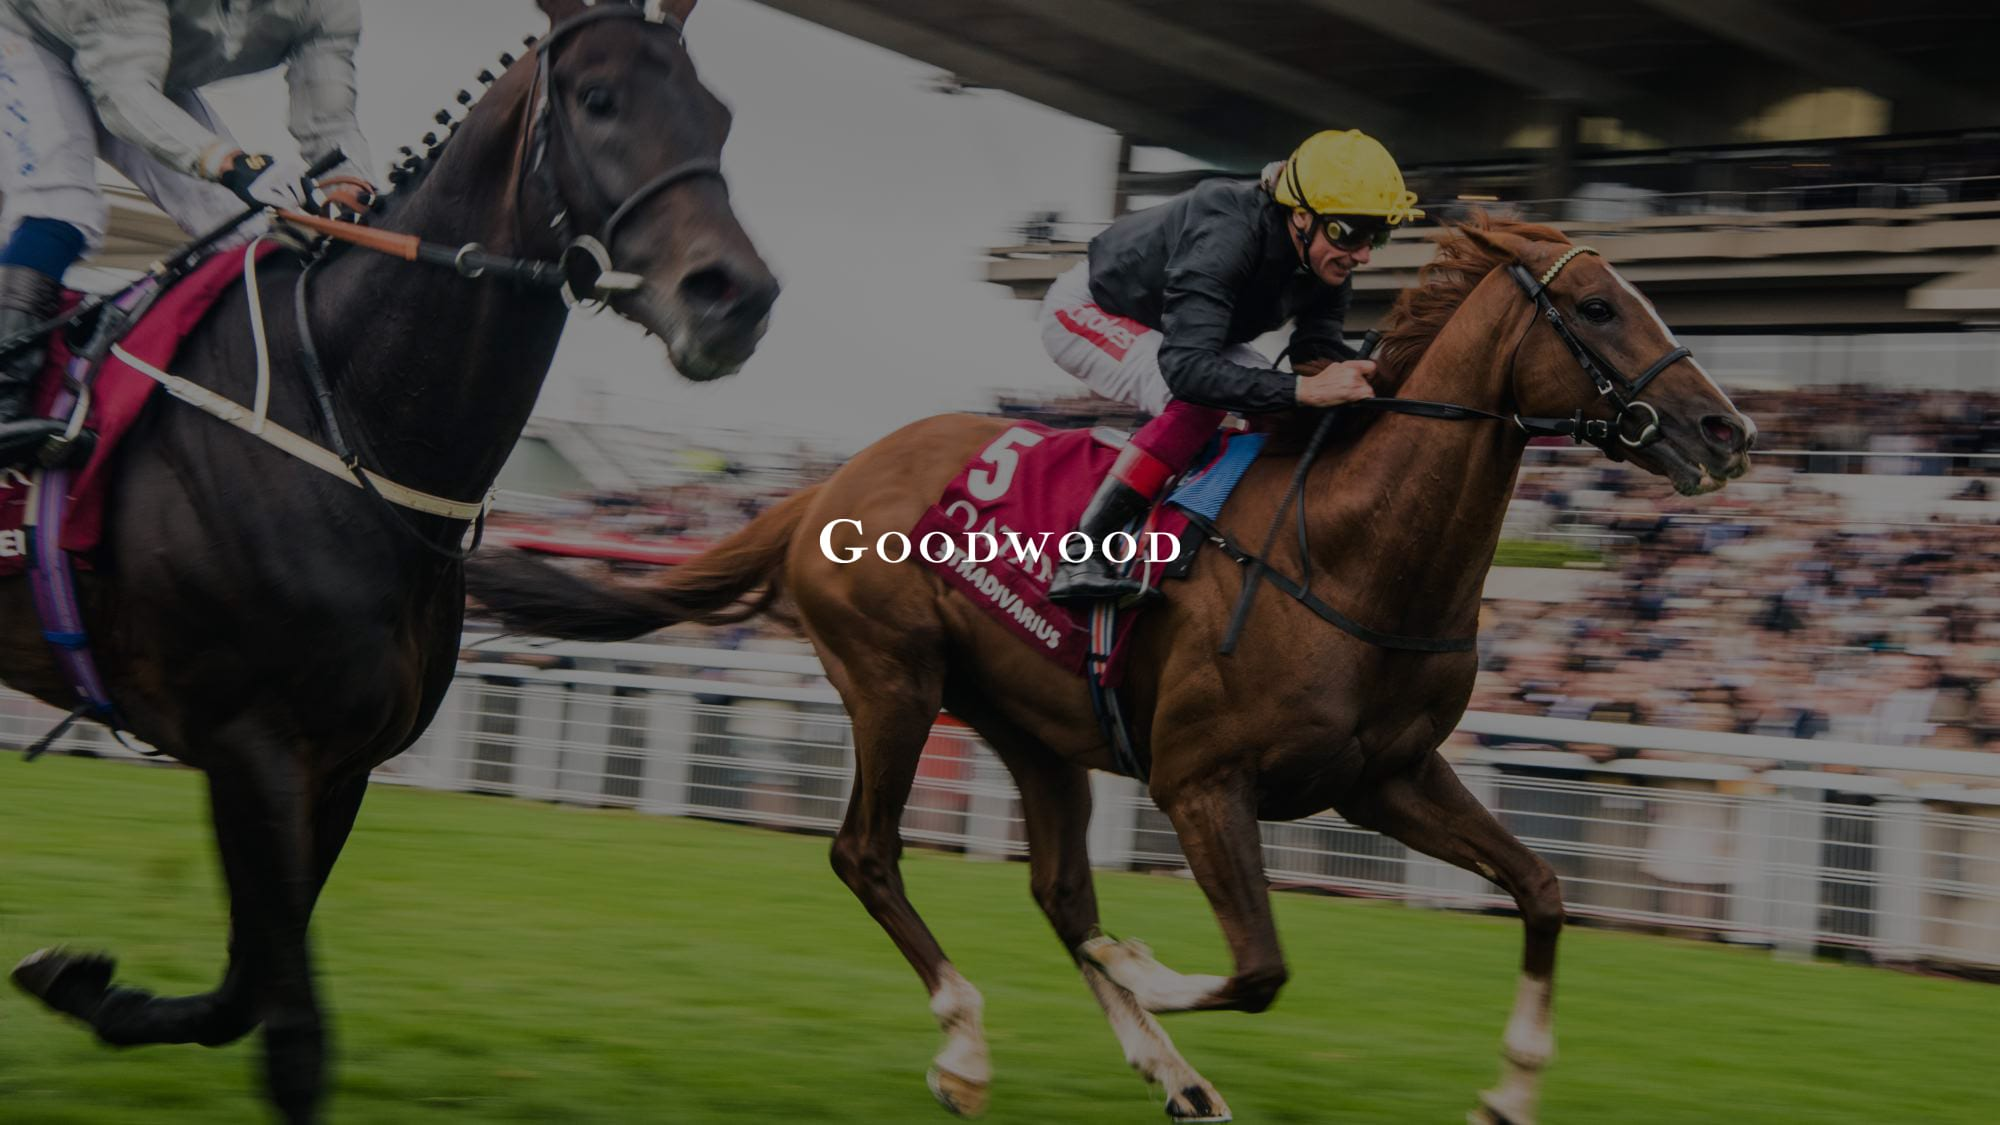 Goodwood Betting Promotions